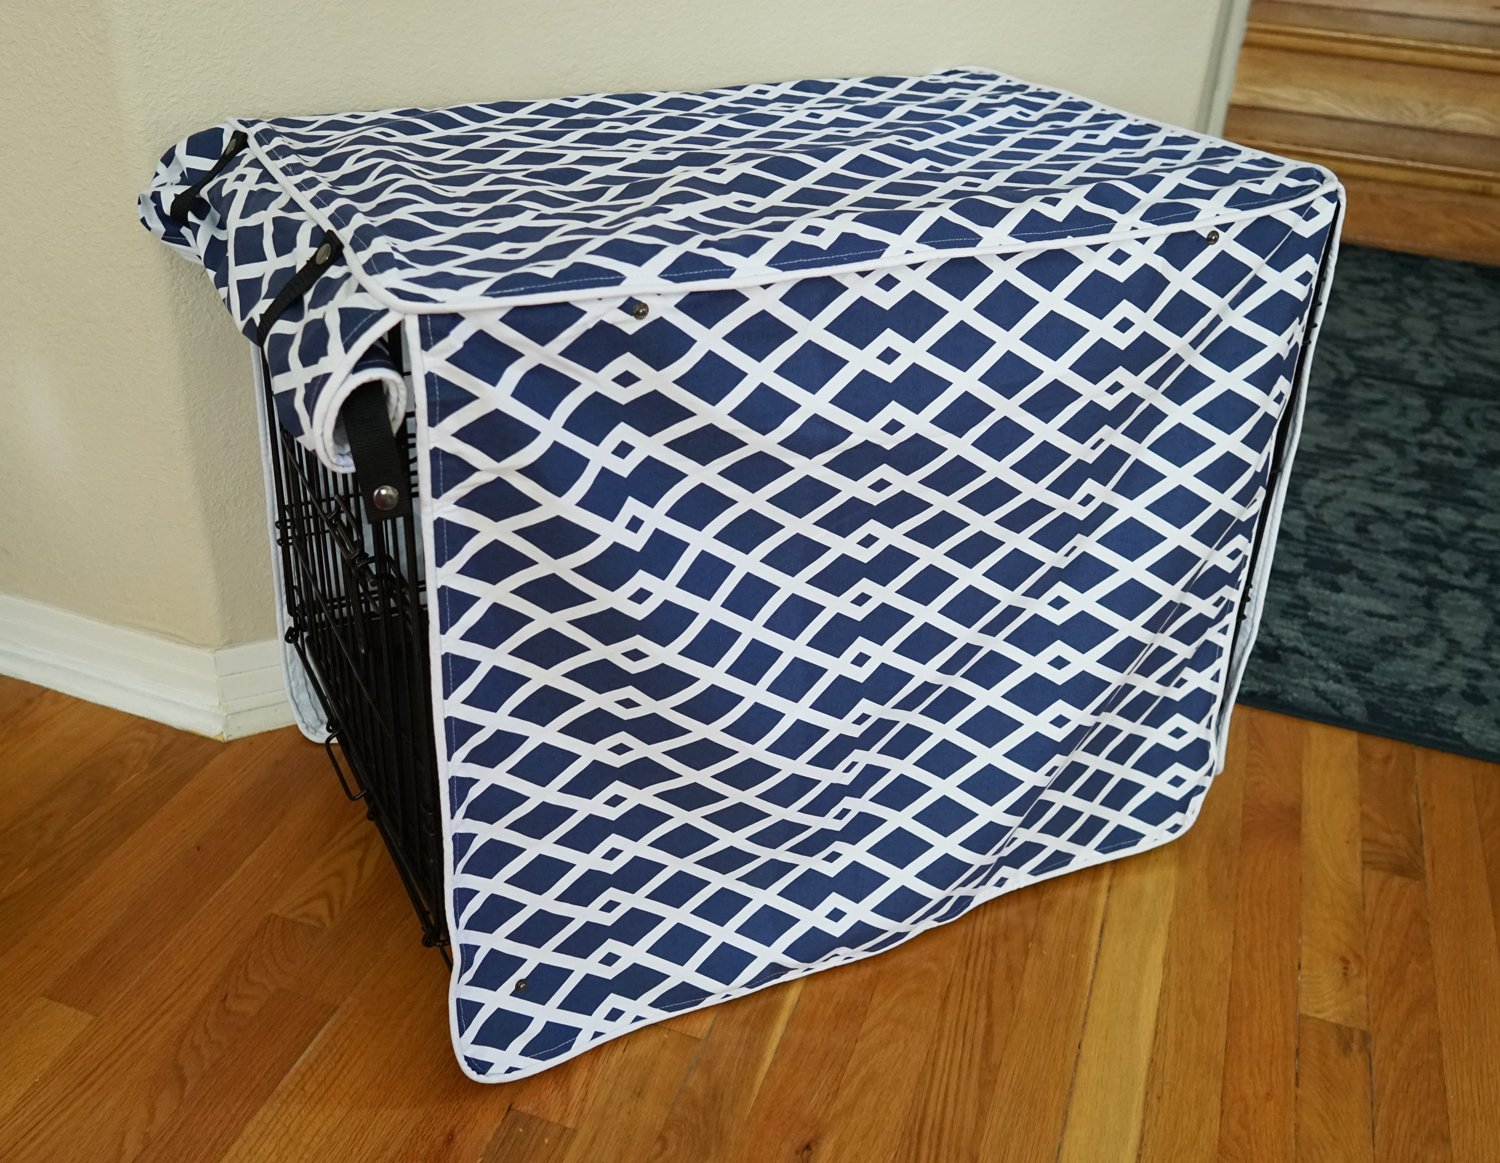 528zone Modern Blue Marine Dog Pet Wire Kennel Crate Cage House Cover (Small, Medium, Large, XL, XXL) (SMALL 24x18x21)